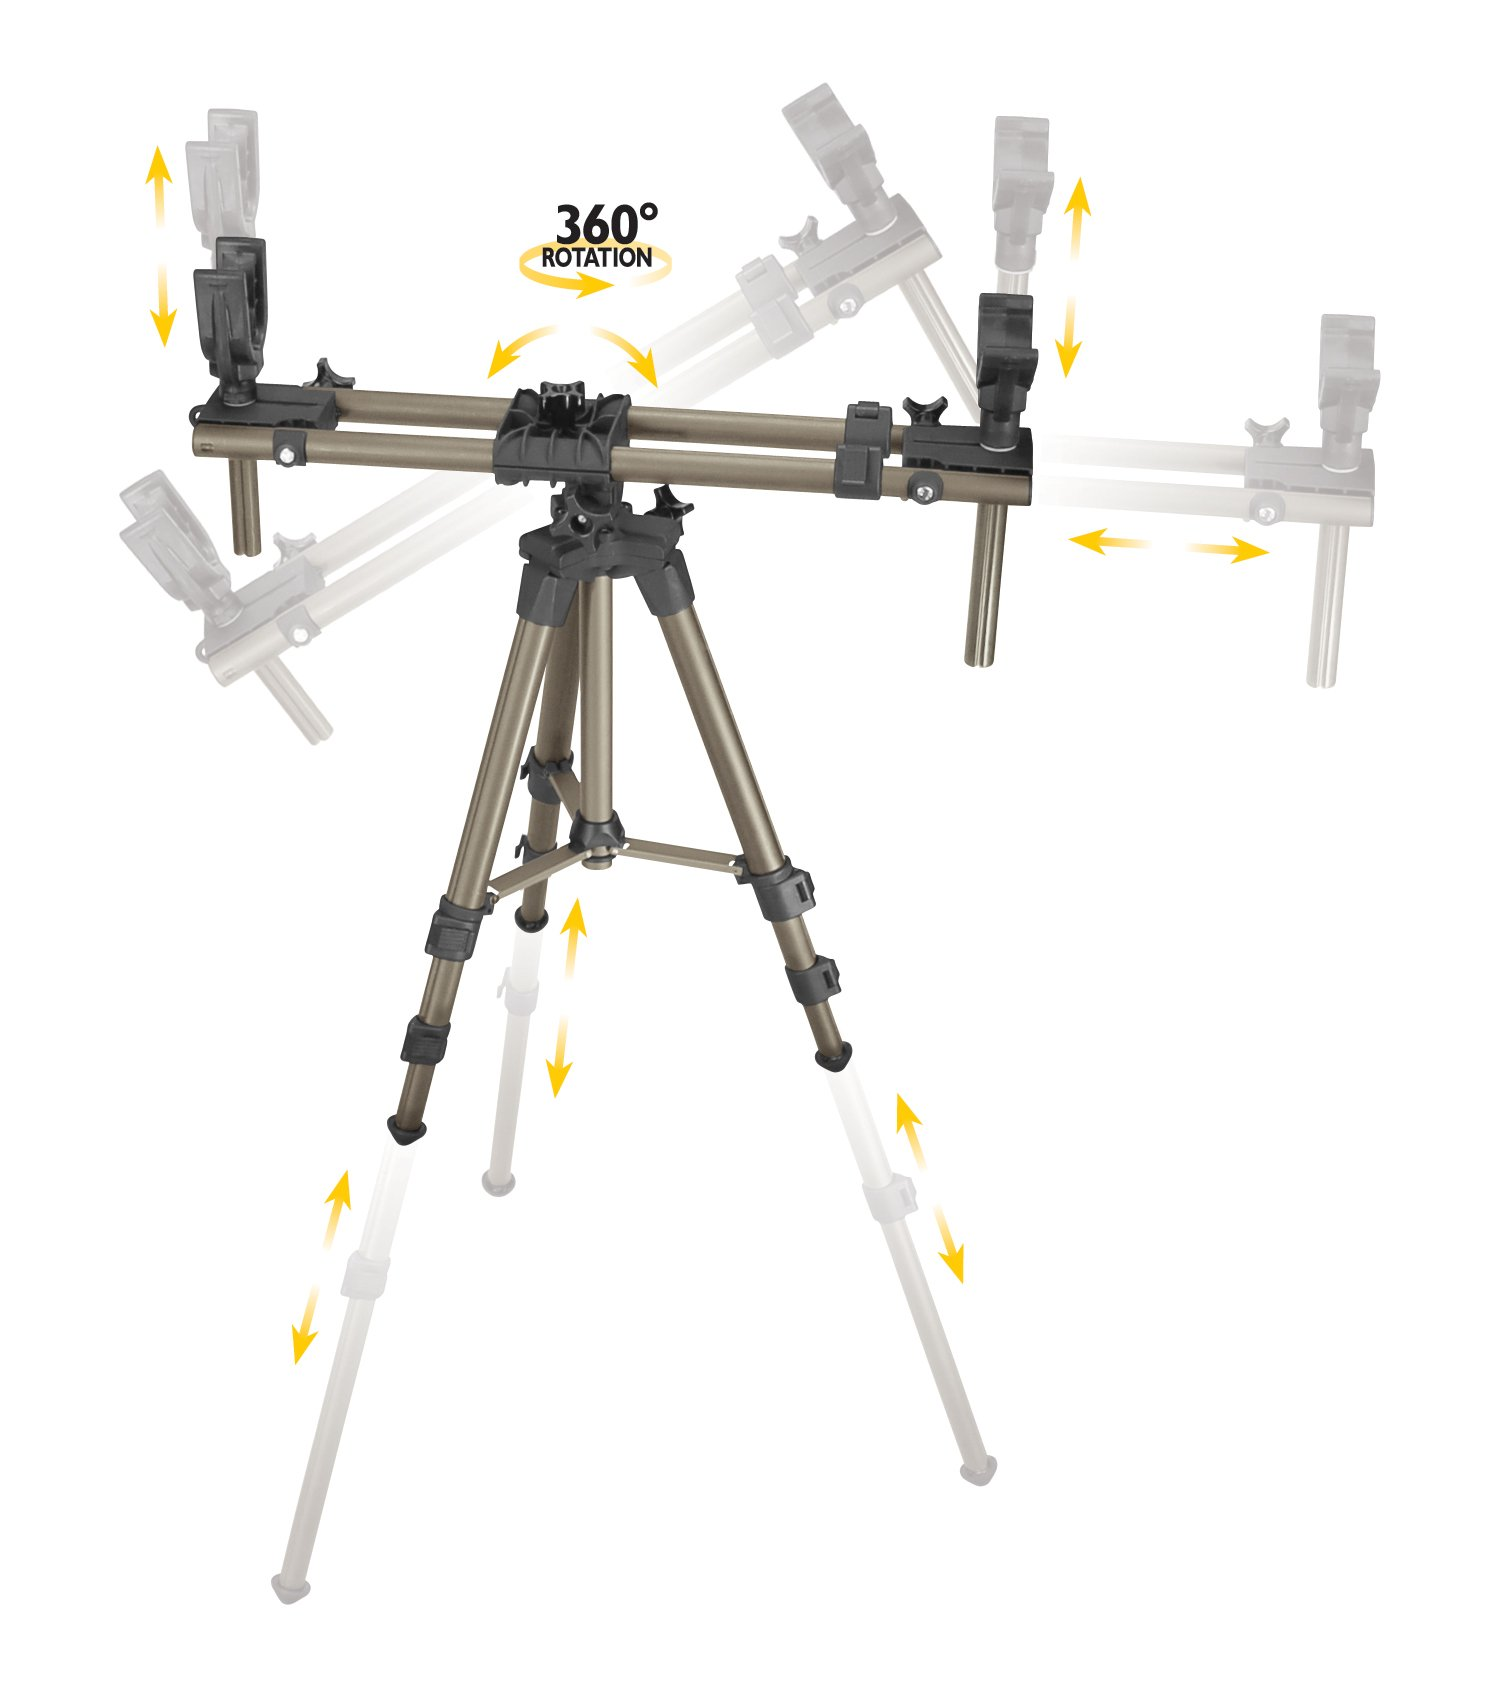 Caldwell DeadShot FieldPod Adjustable Ambidextrous Rifle Shooting Rest for Outdoor Range and Hunting by Caldwell (Image #2)